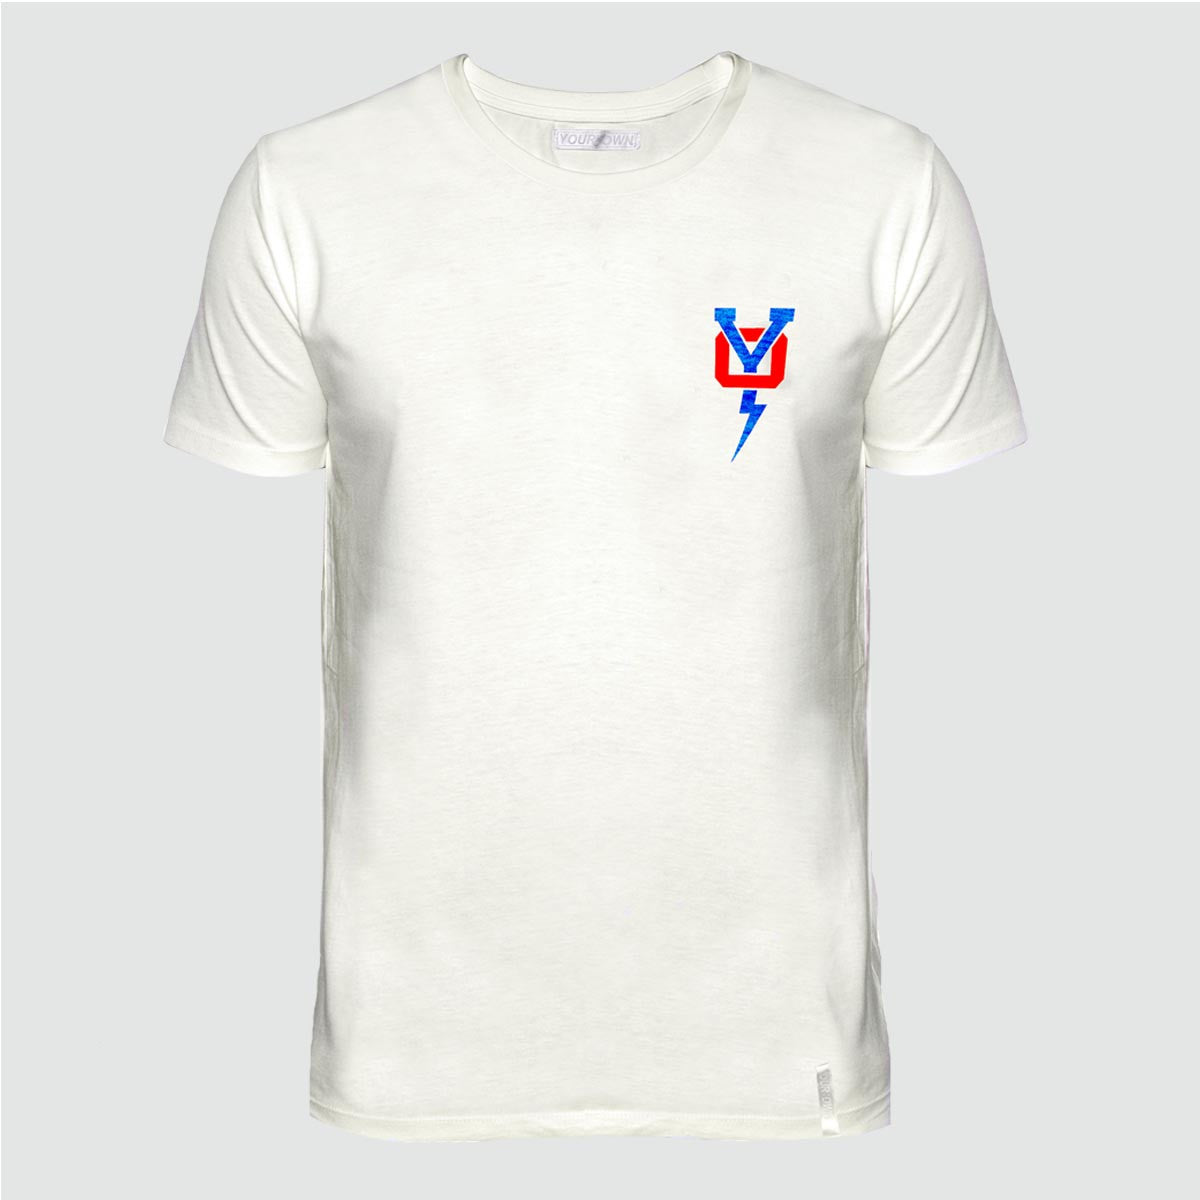 YO 'LA BRASA' T SHIRT CREAM